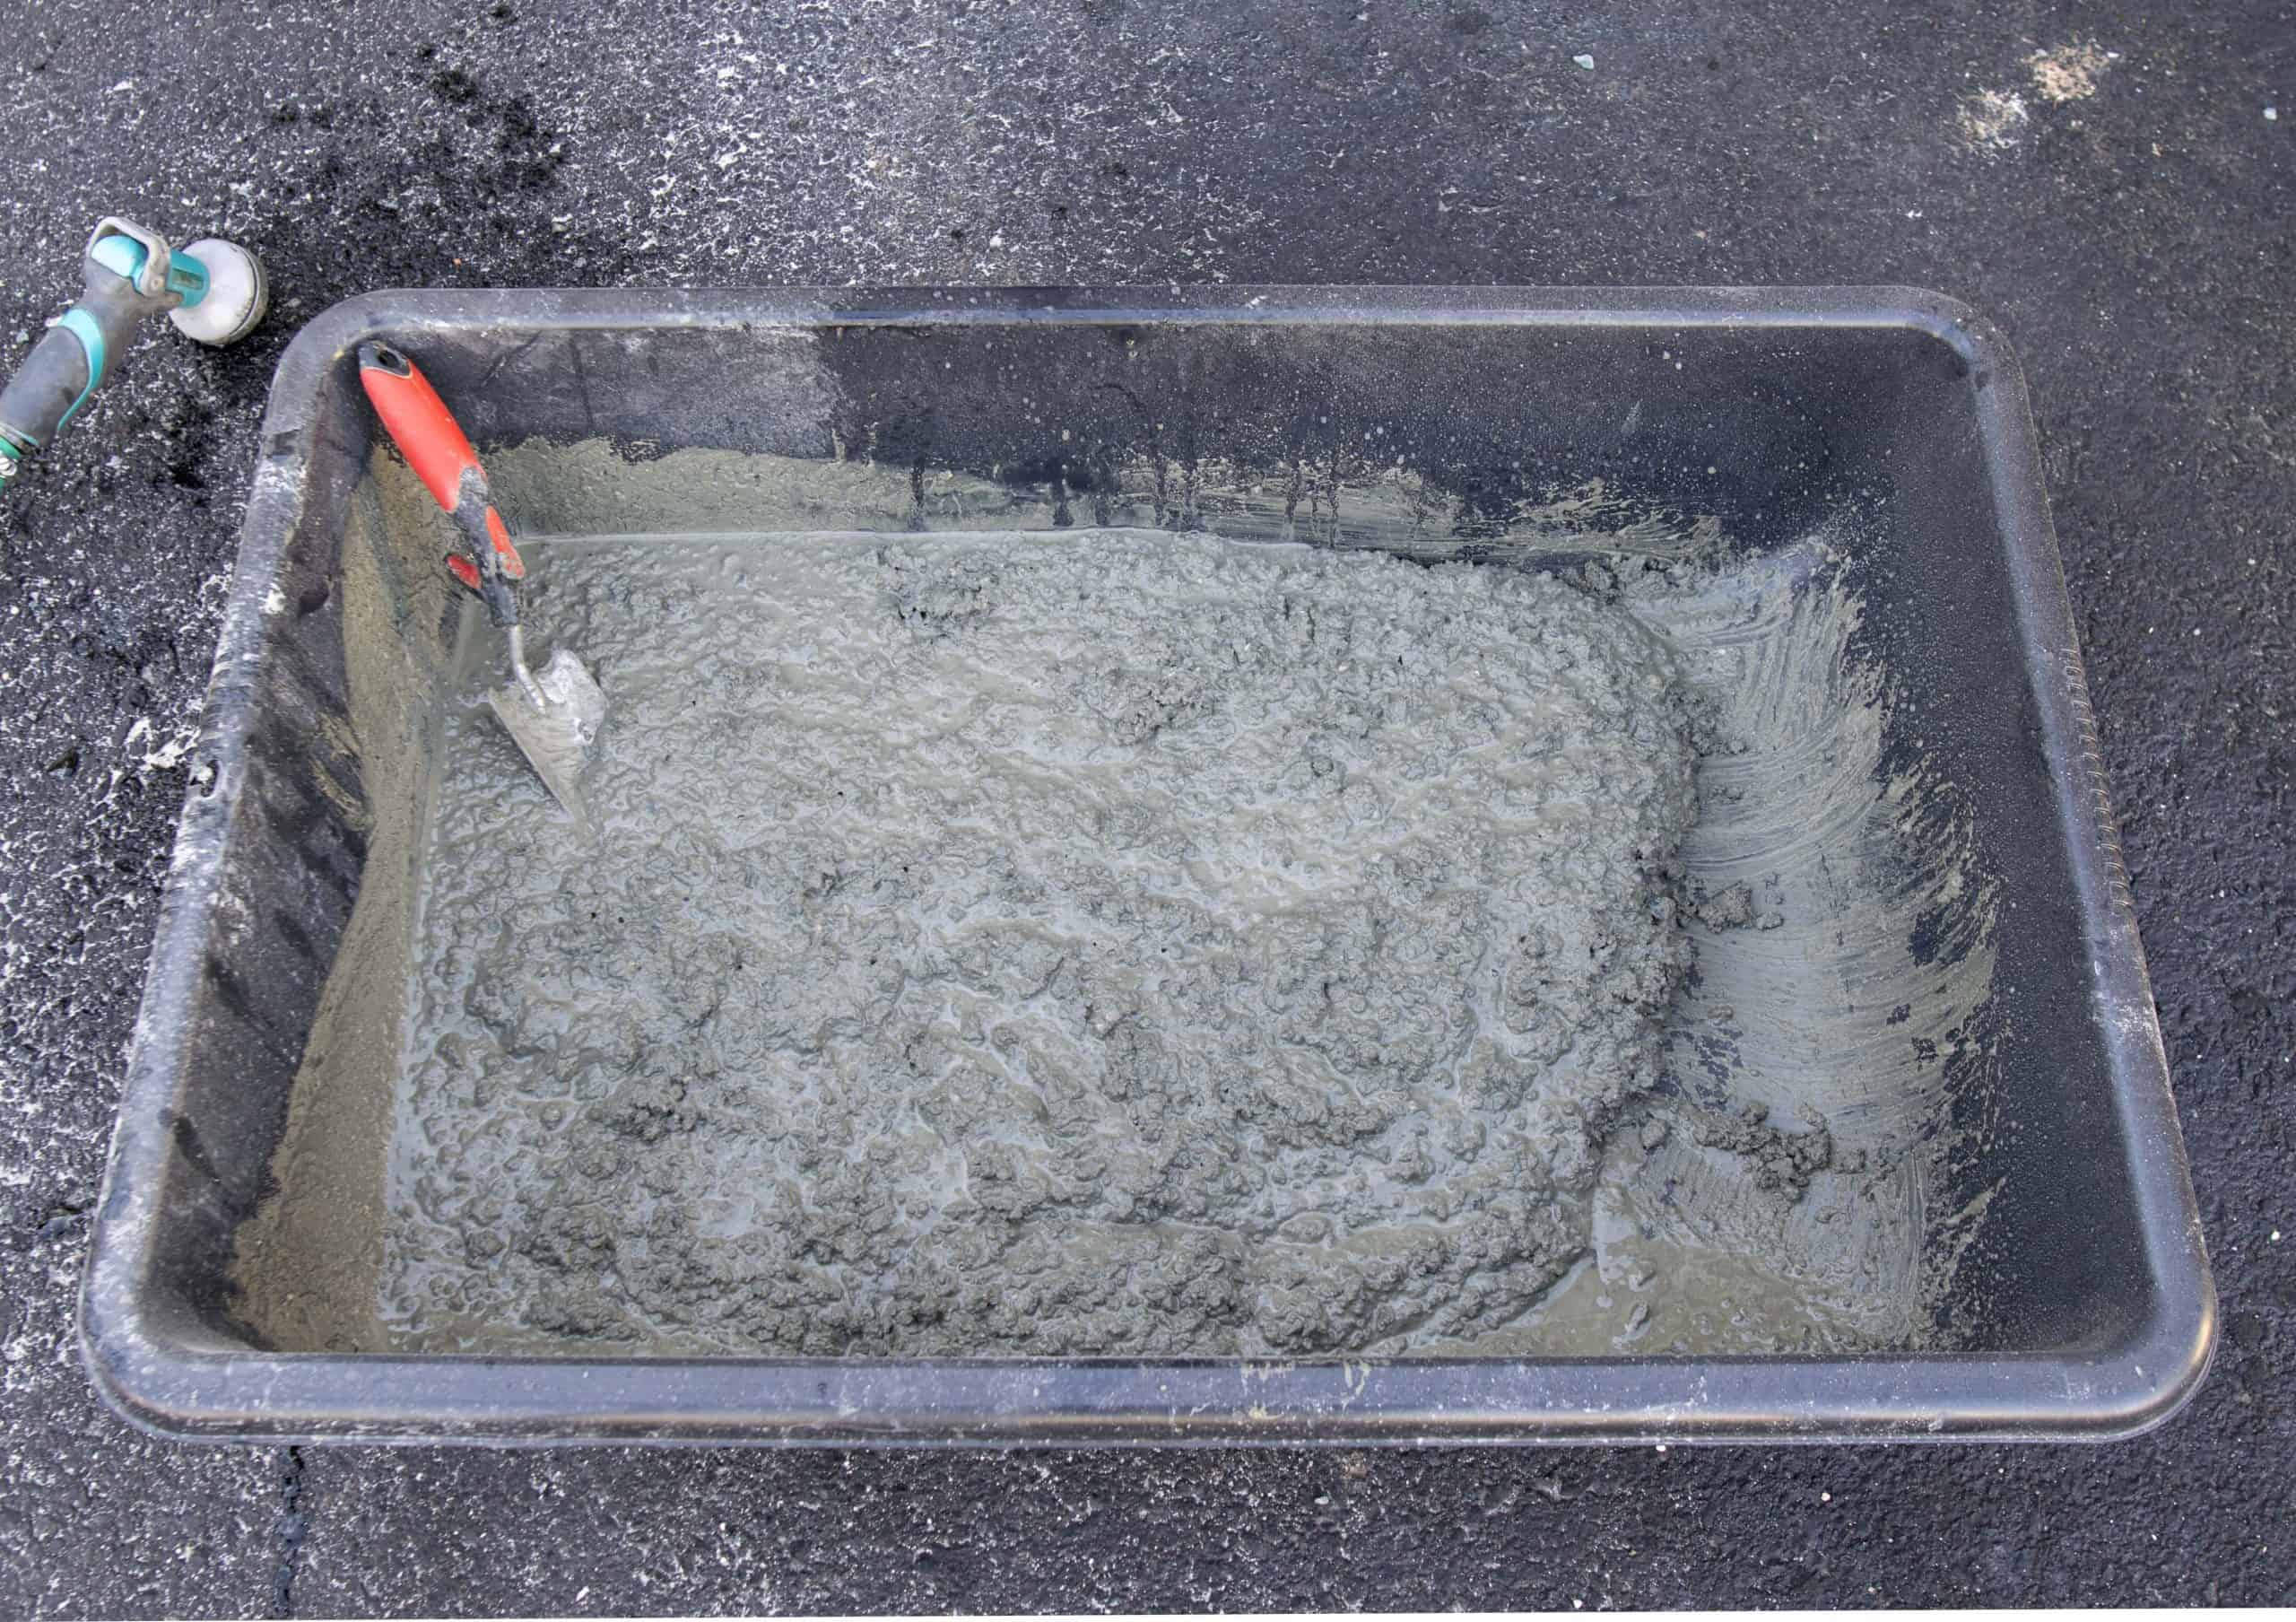 Mixed concrete with water in a trough with thick oatmeal consistency